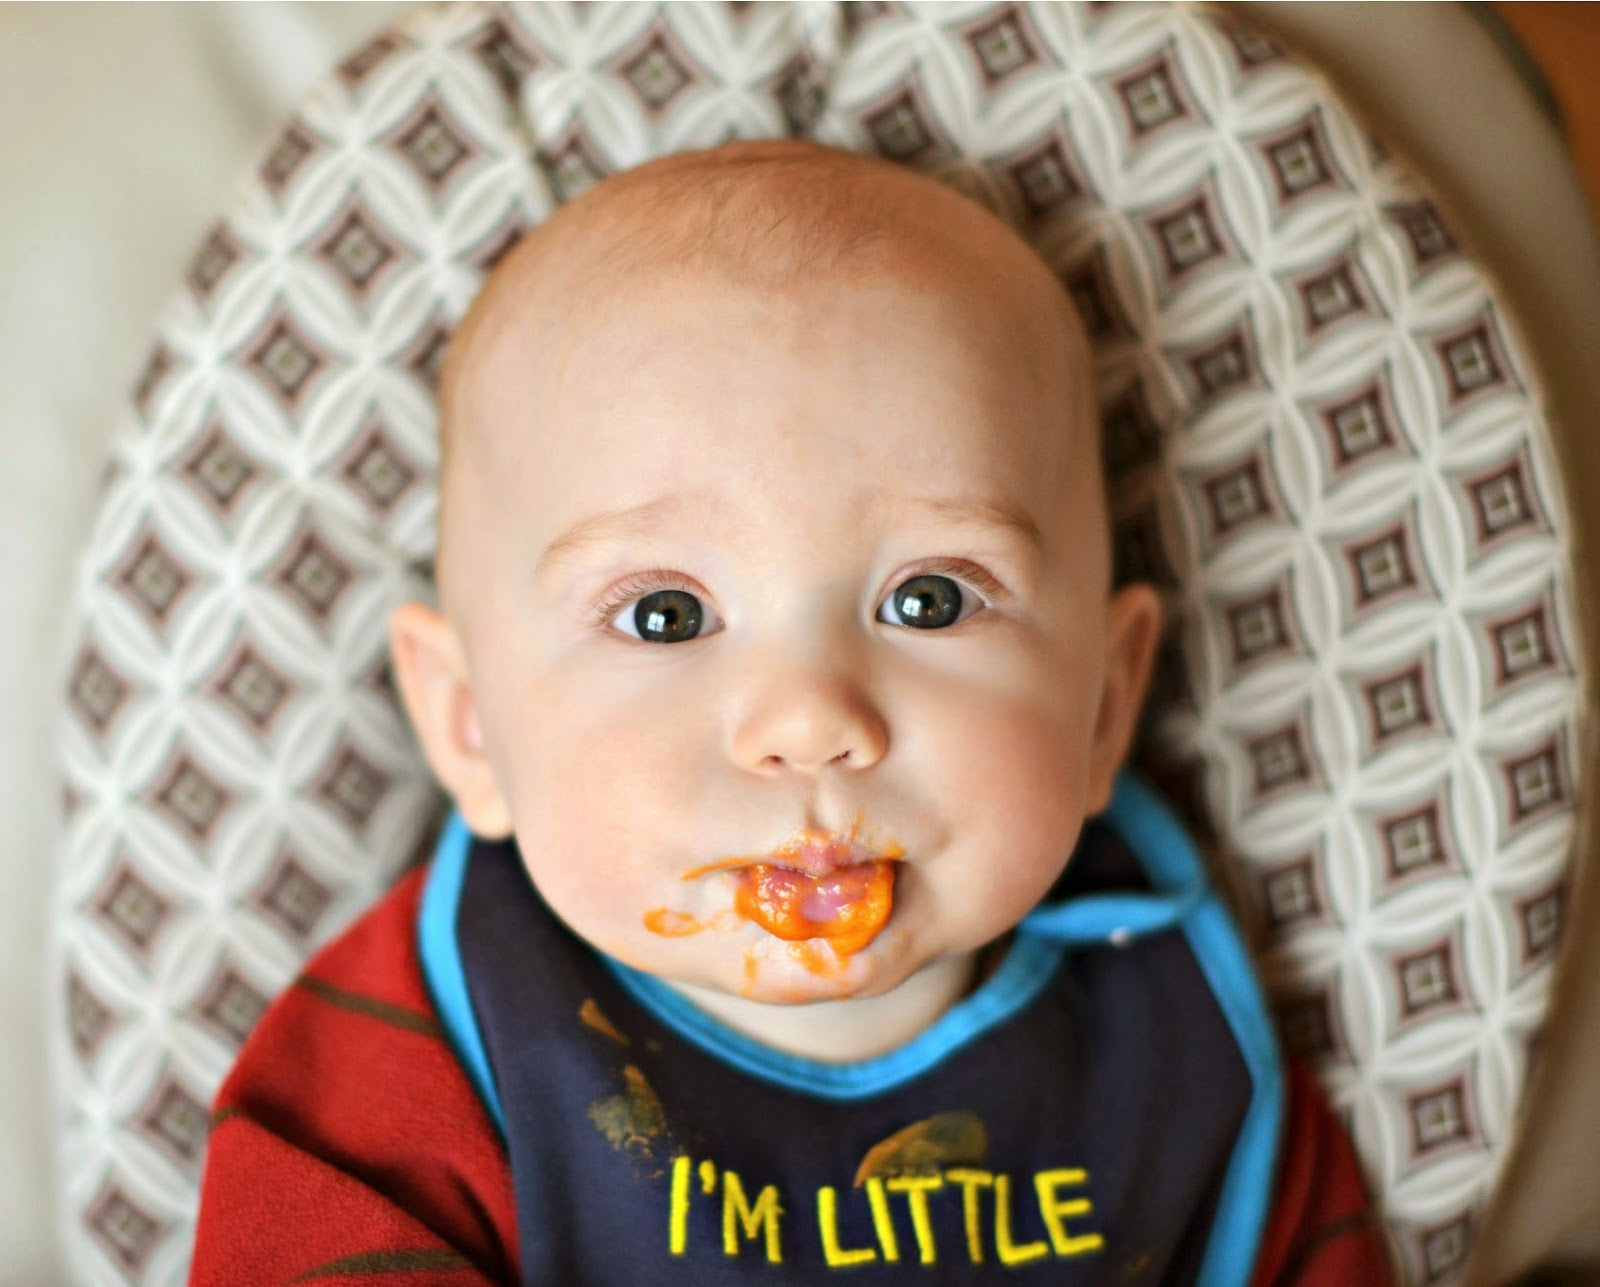 baby's first food sweet potatoes 6 months cute messy face picture